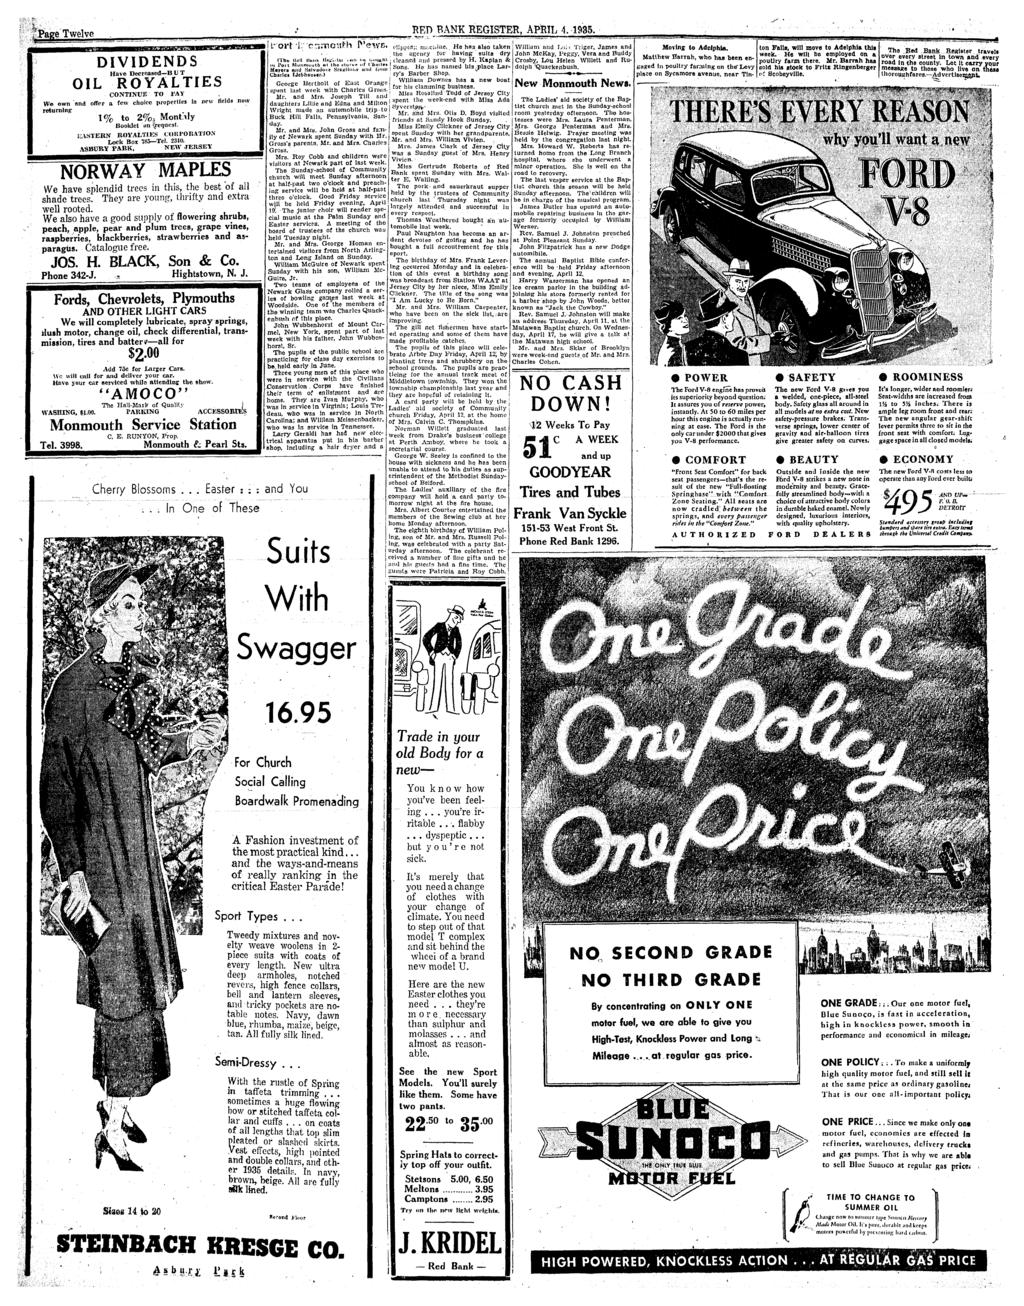 Celebrating Easter Morn On Top Of Mount Mitchell Pdf Body Wiring Diagram For 1946 47 Chevrolet Sedan Style 1019 Page Twelve Red Bank Register April 4 1935 Lilrort L